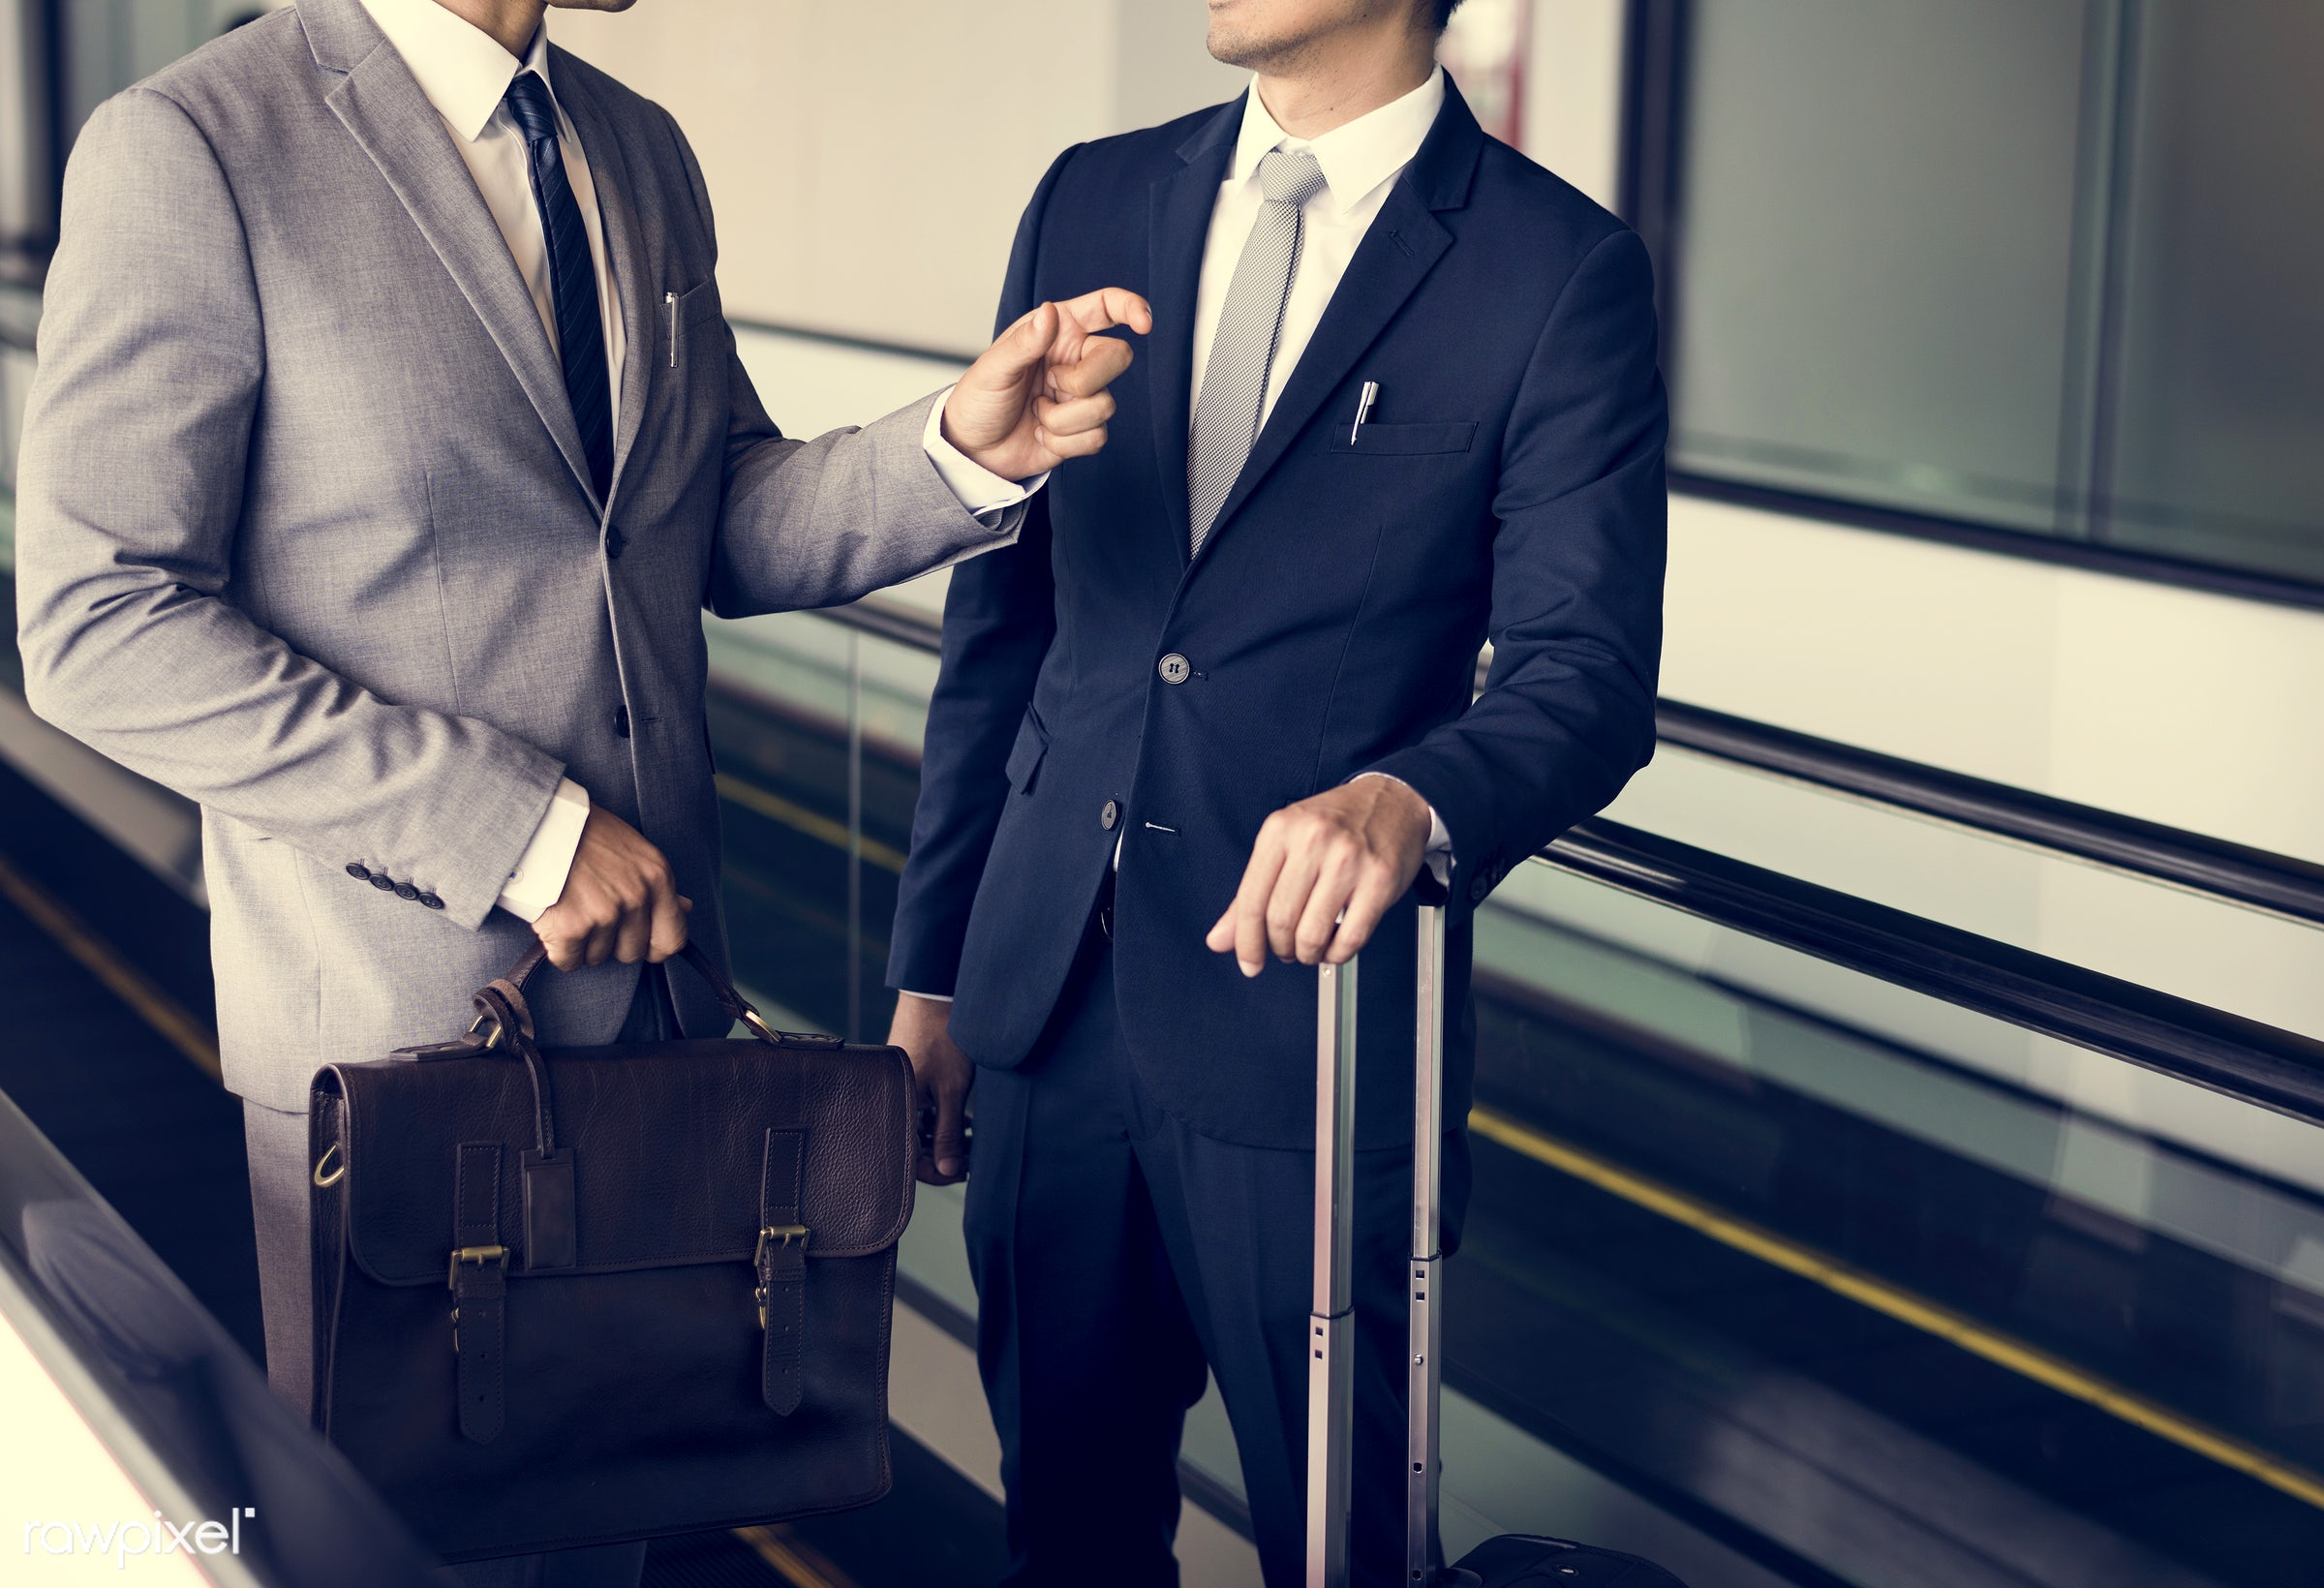 baggage, business trip, person, suit and tie, manager, white collar worker, diverse, luggage, travel, people, together,...